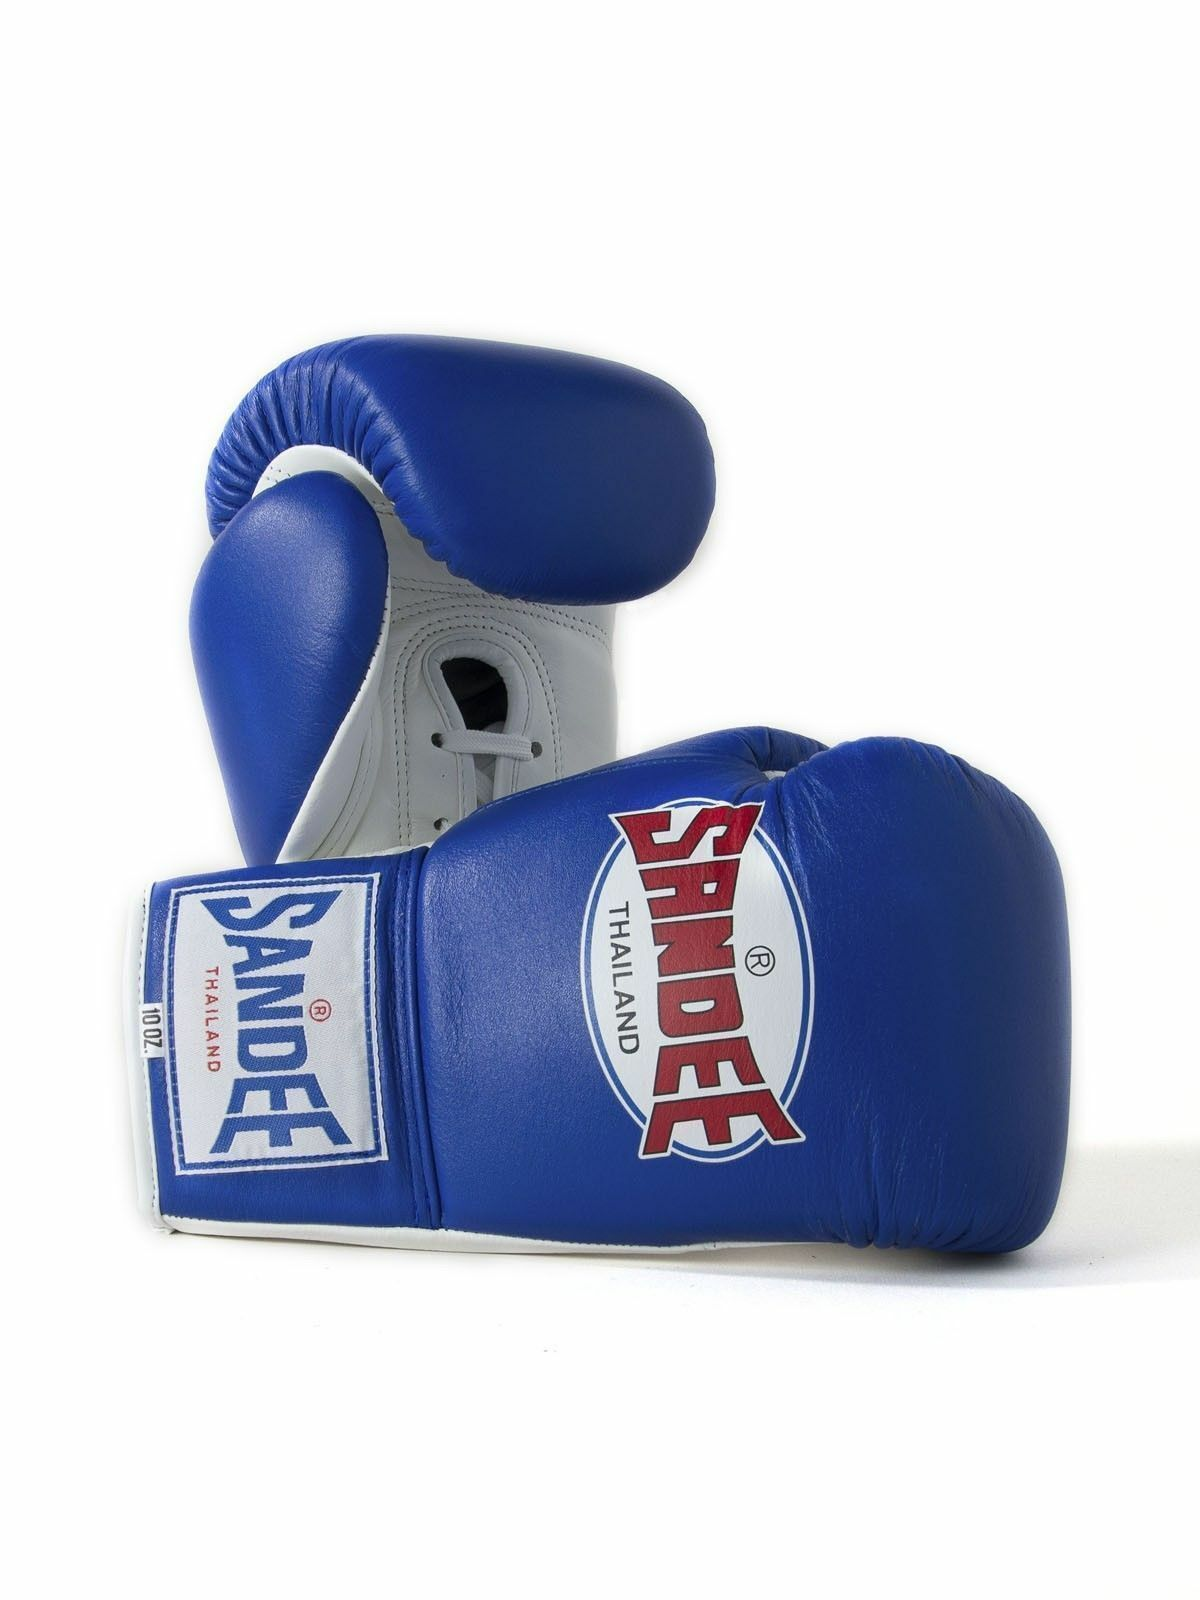 Sandee Lace Up Pro Fight Blau & Weiß Leder Muay Thai Boxing Gloves